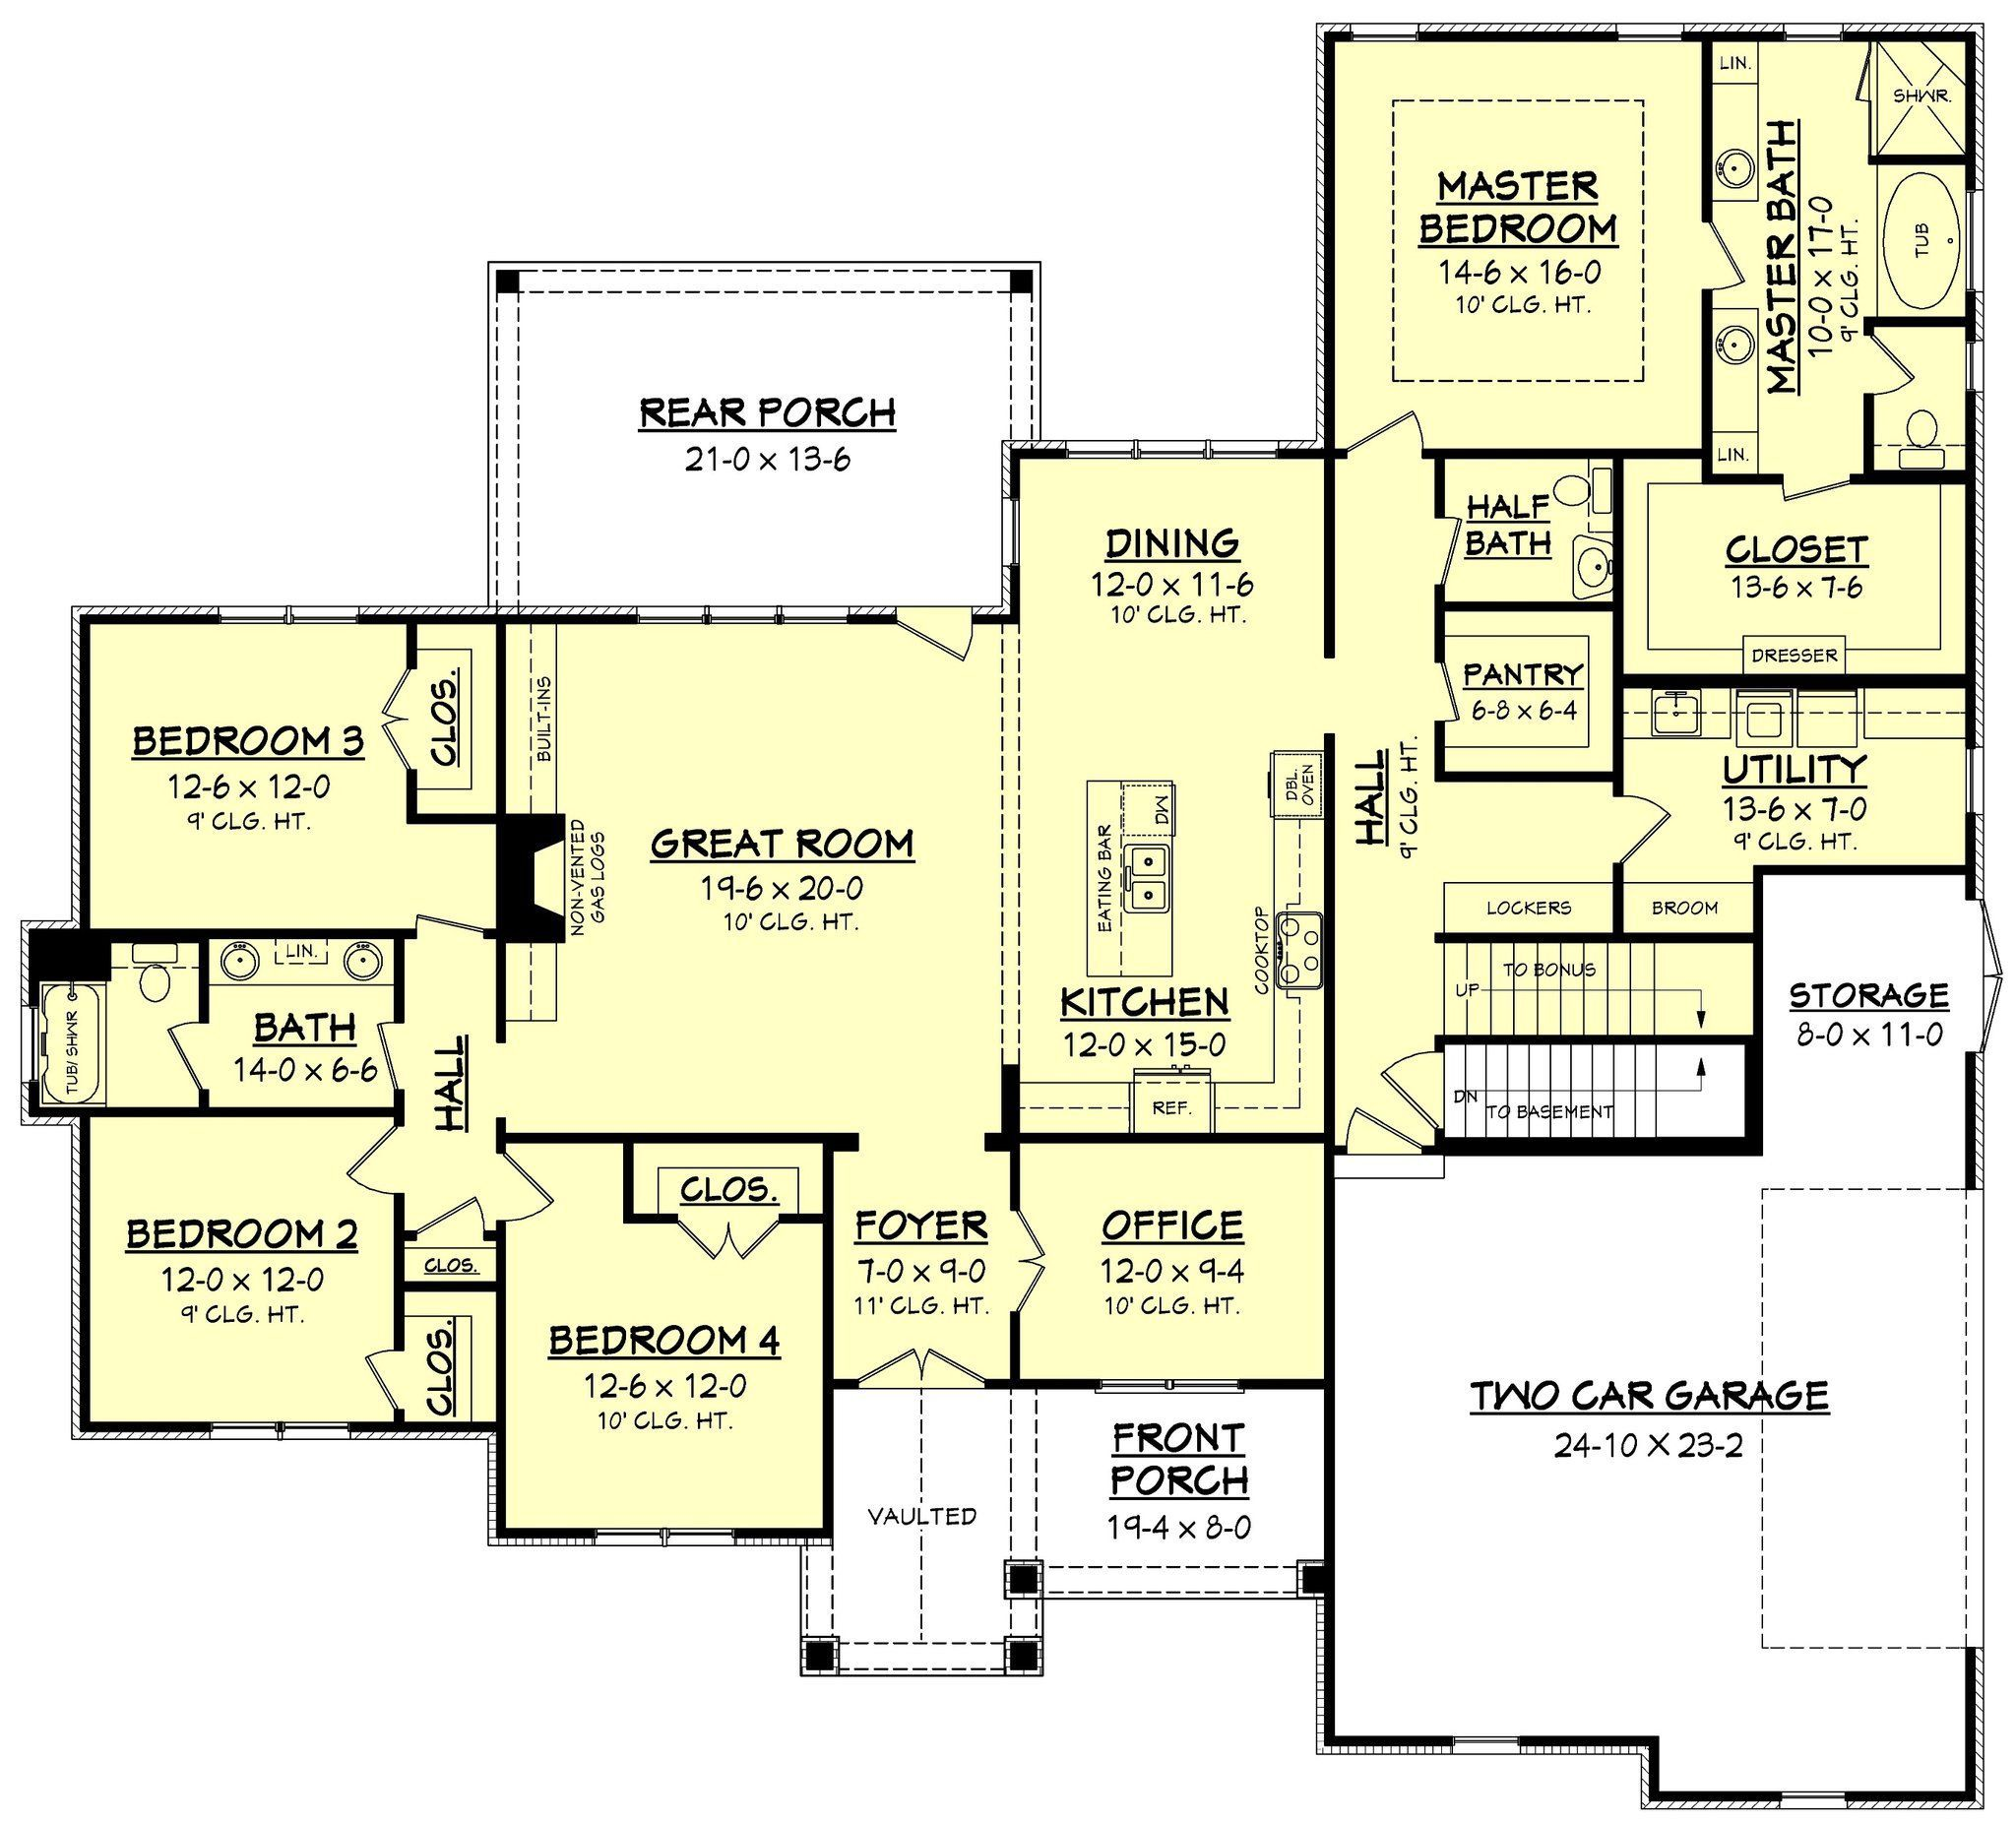 This beautiful bedroom craftsman style house plan offers great